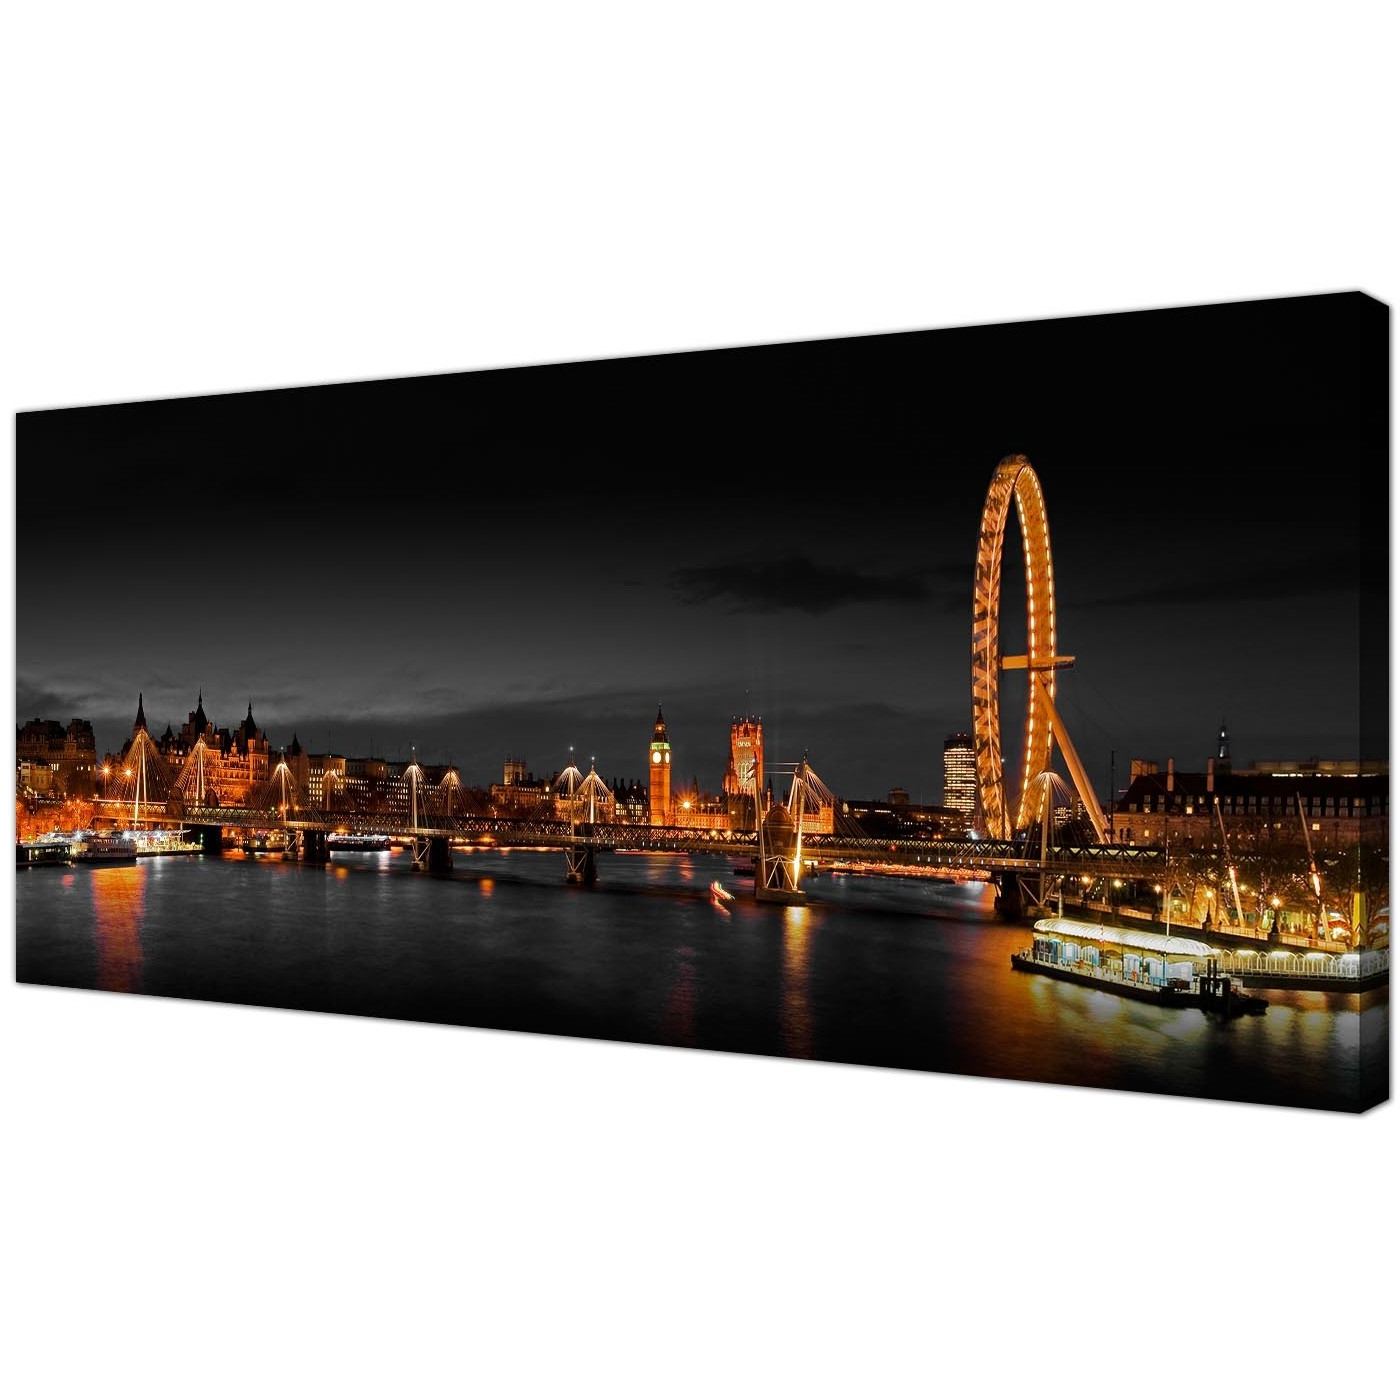 Panoramic Wall Art Intended For Most Recent Panoramic Canvas Wall Art Of London Eye At Night For Your Living Room (View 4 of 15)